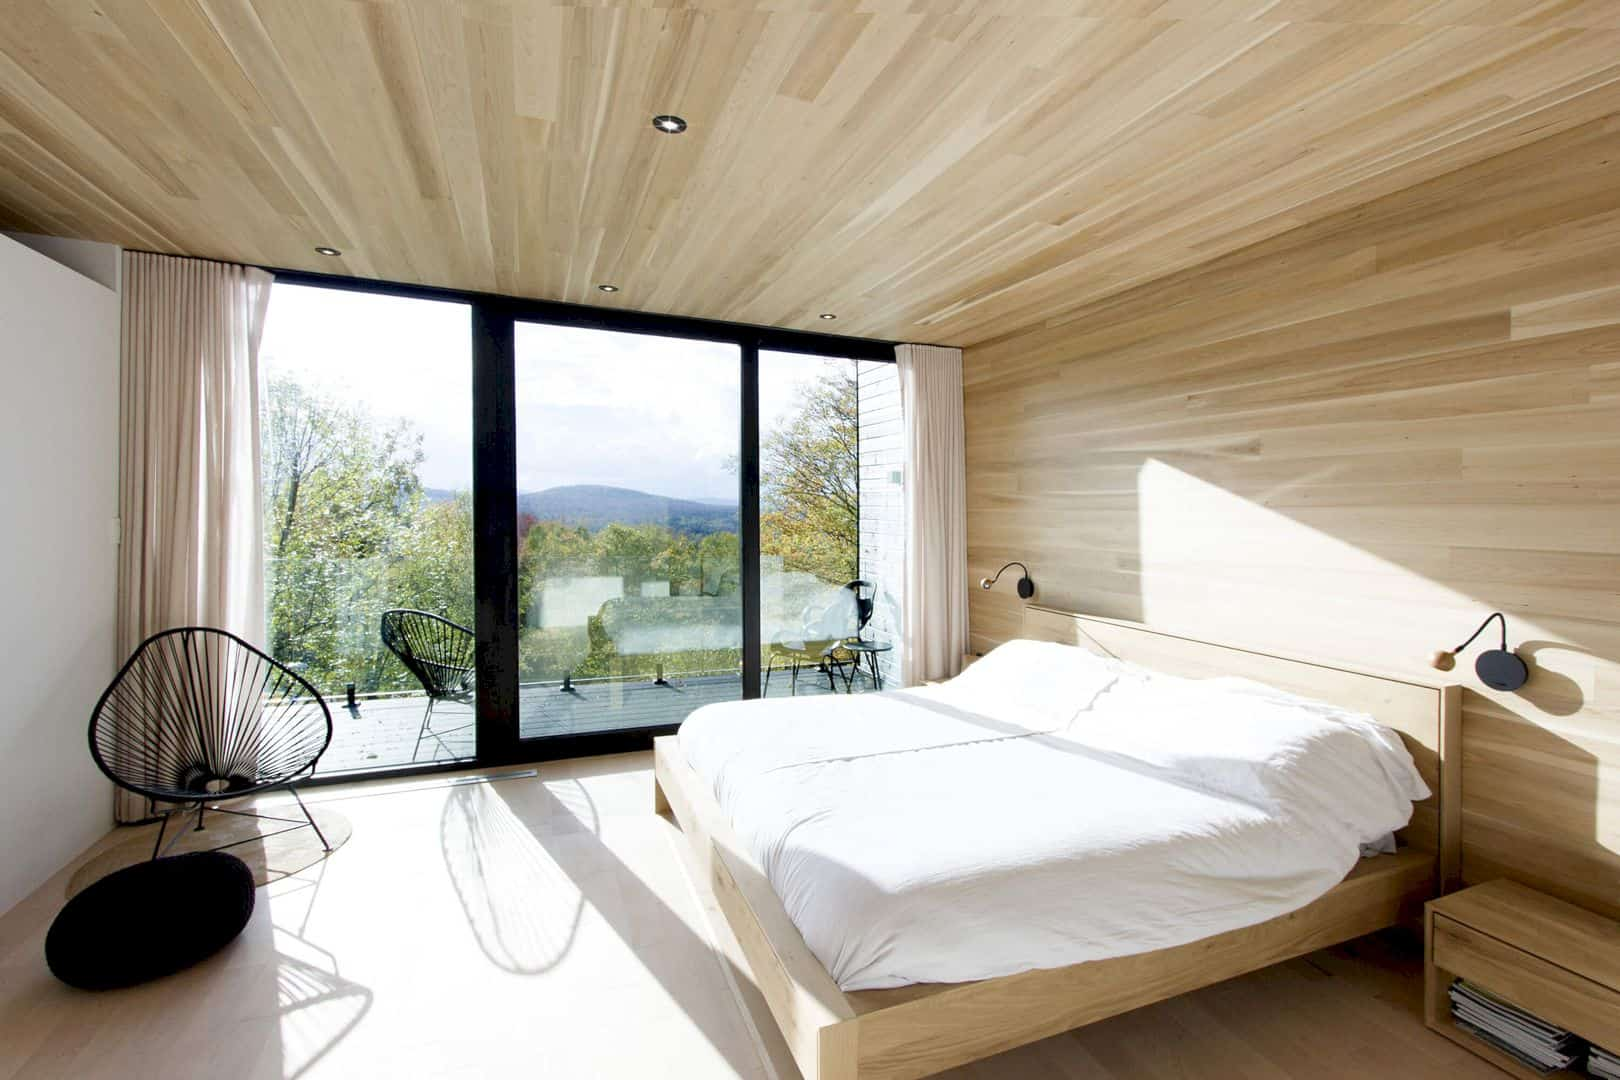 Residence Montagnard: A House Expansion with Additional Bedroom above the Garage